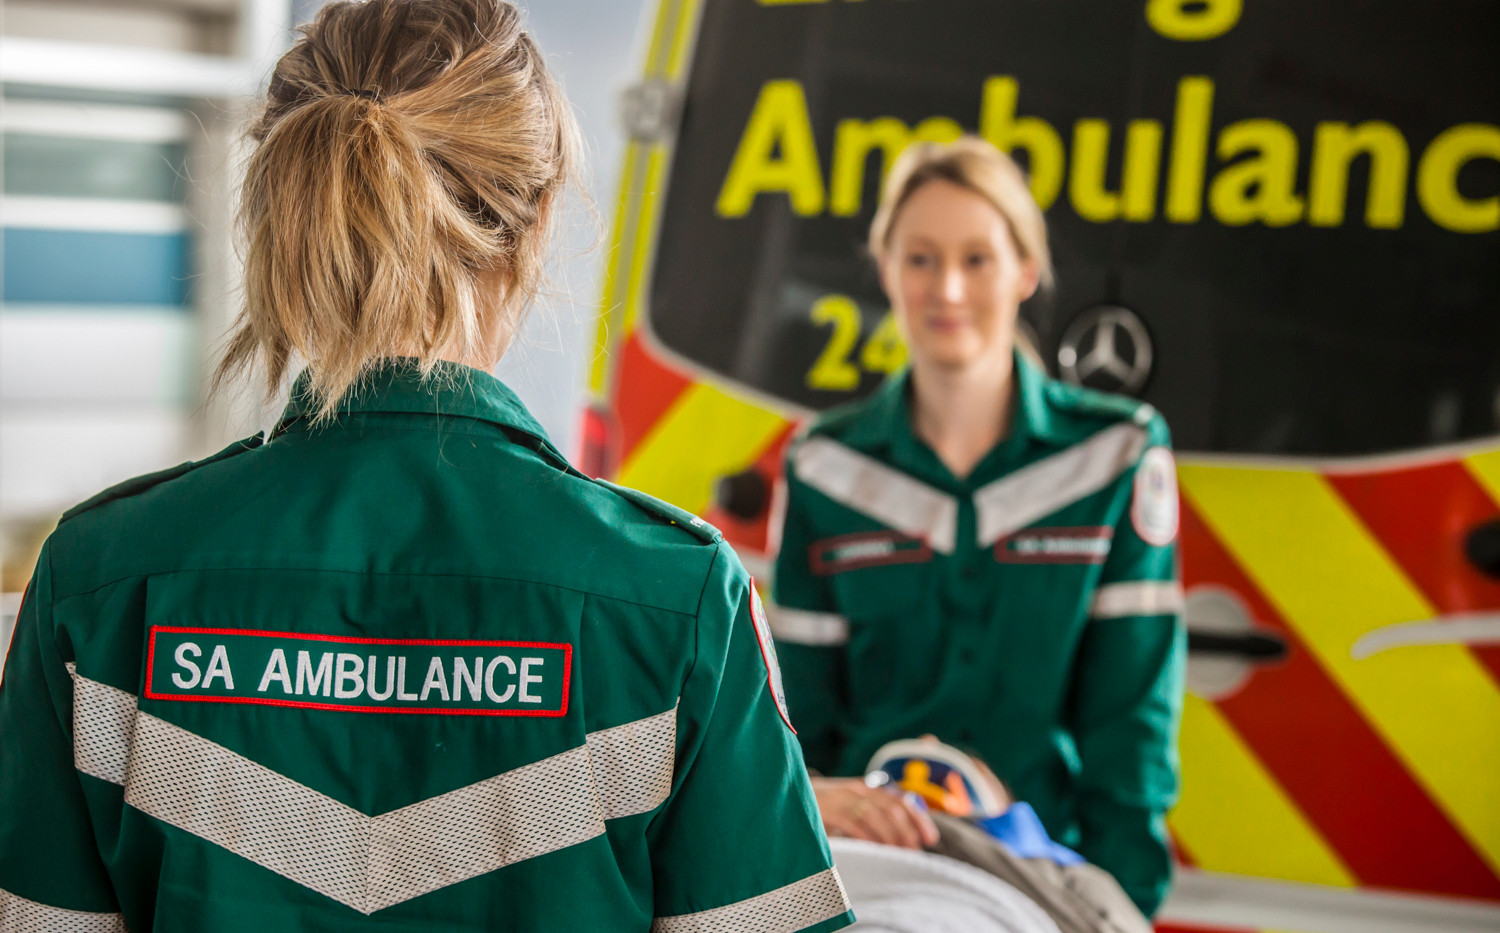 South Australian Ambulance Officers